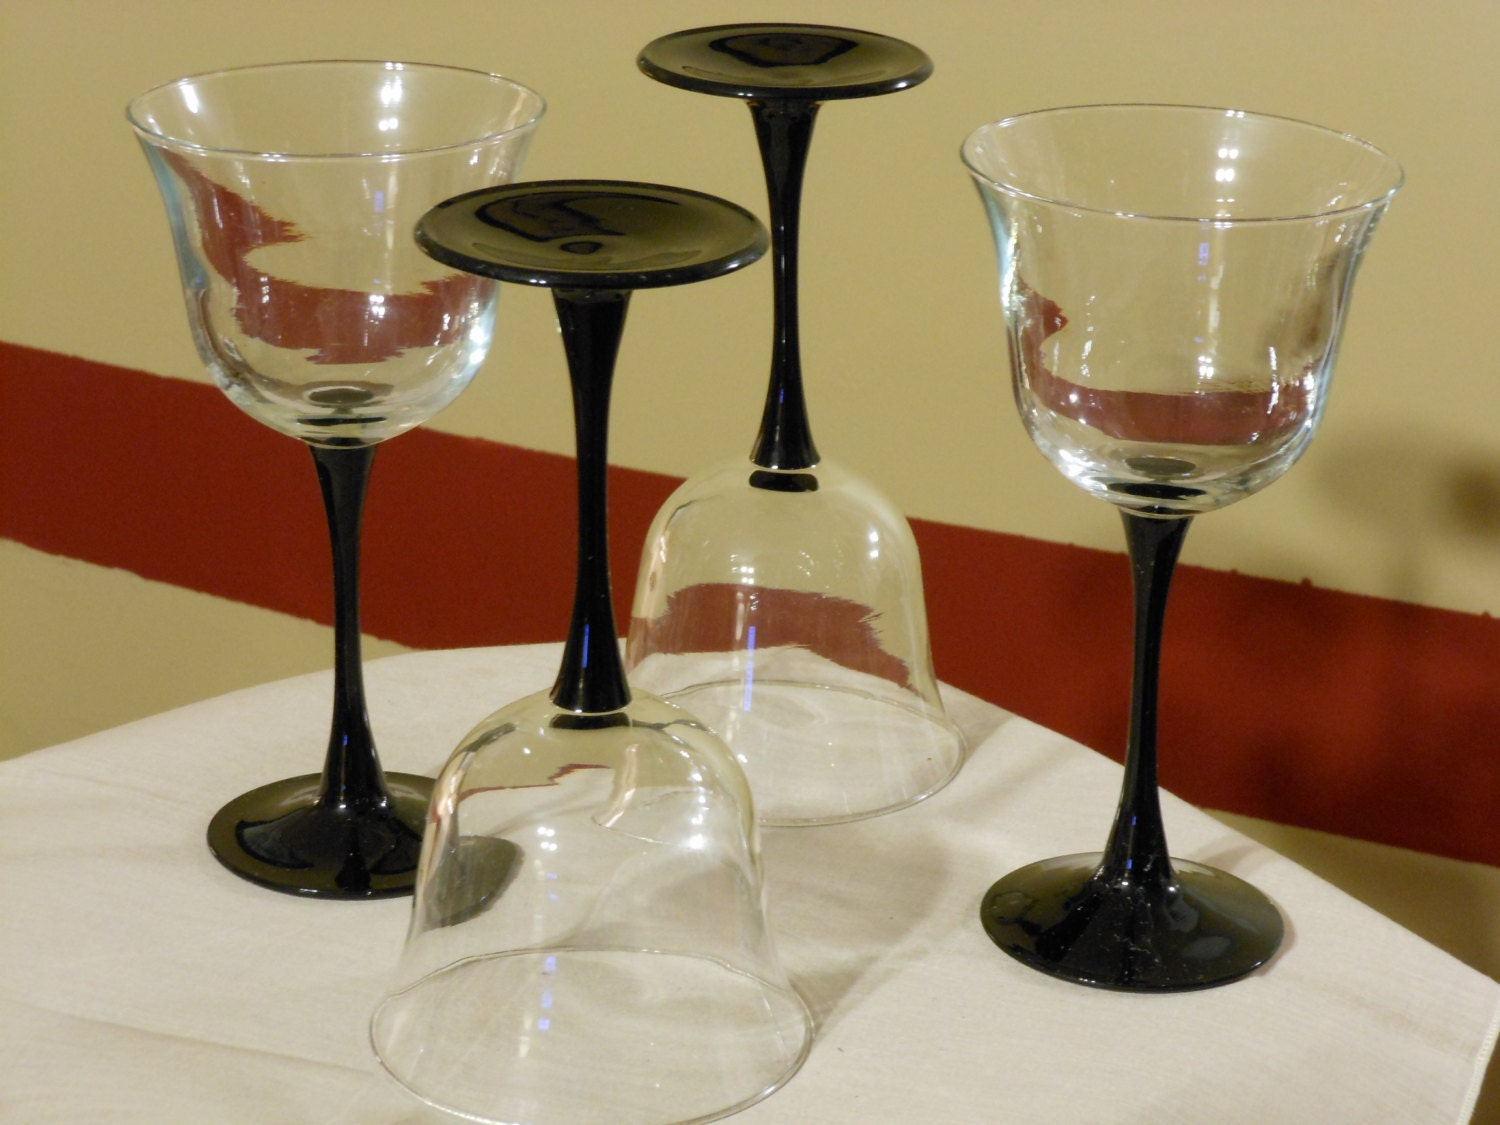 Wine Glasses With Black Stems Set Of Four Luminarc Americana White Wine Glasses With